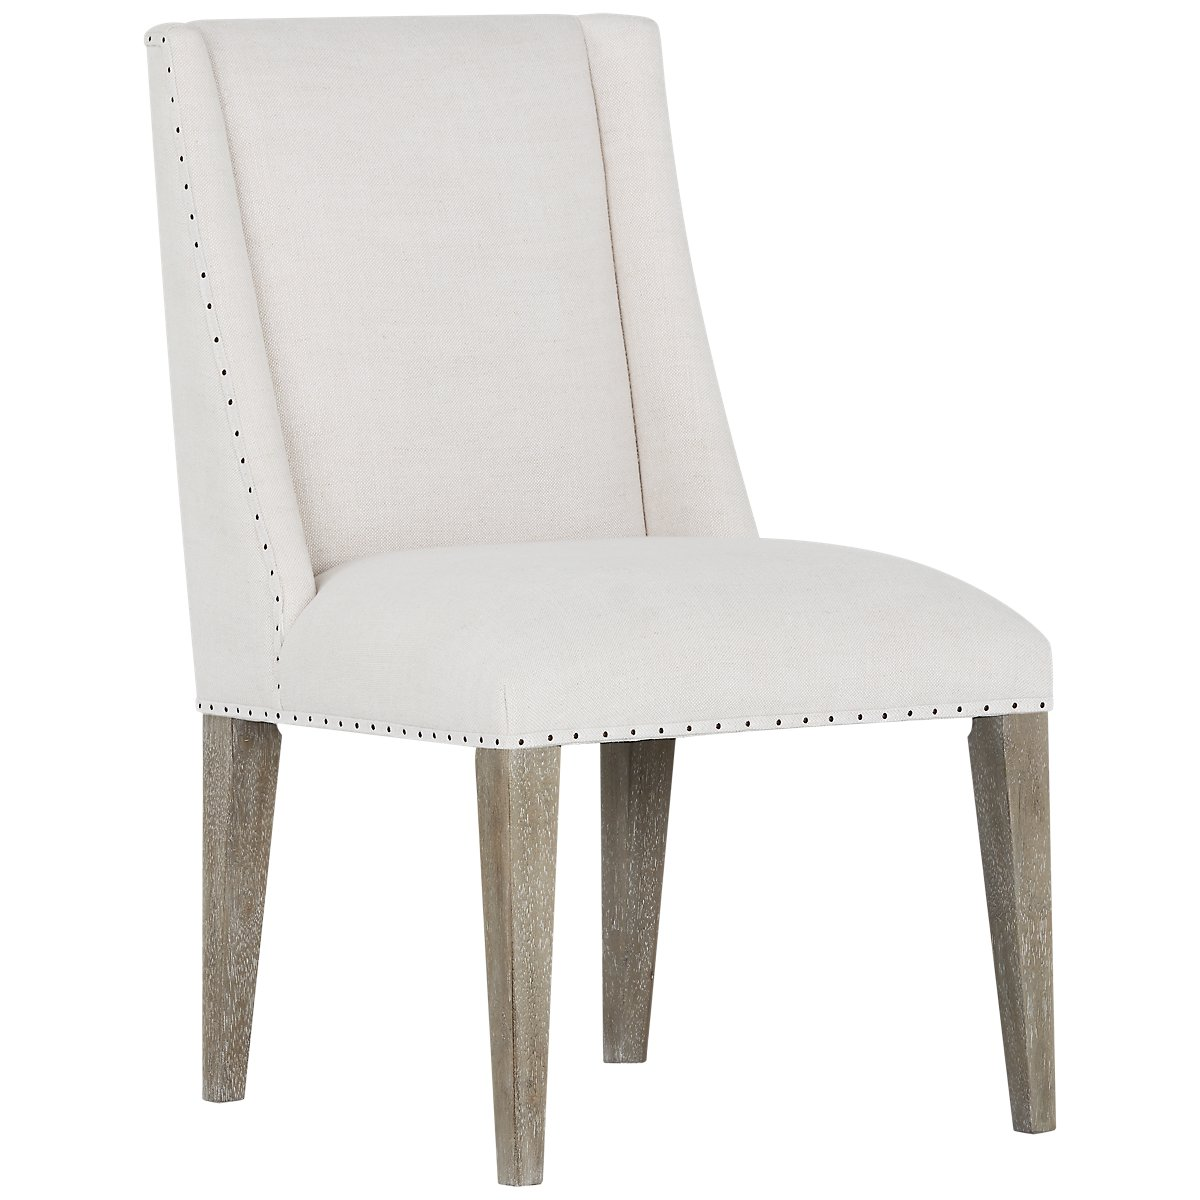 city furniture berlin white upholstered arm chair. Black Bedroom Furniture Sets. Home Design Ideas